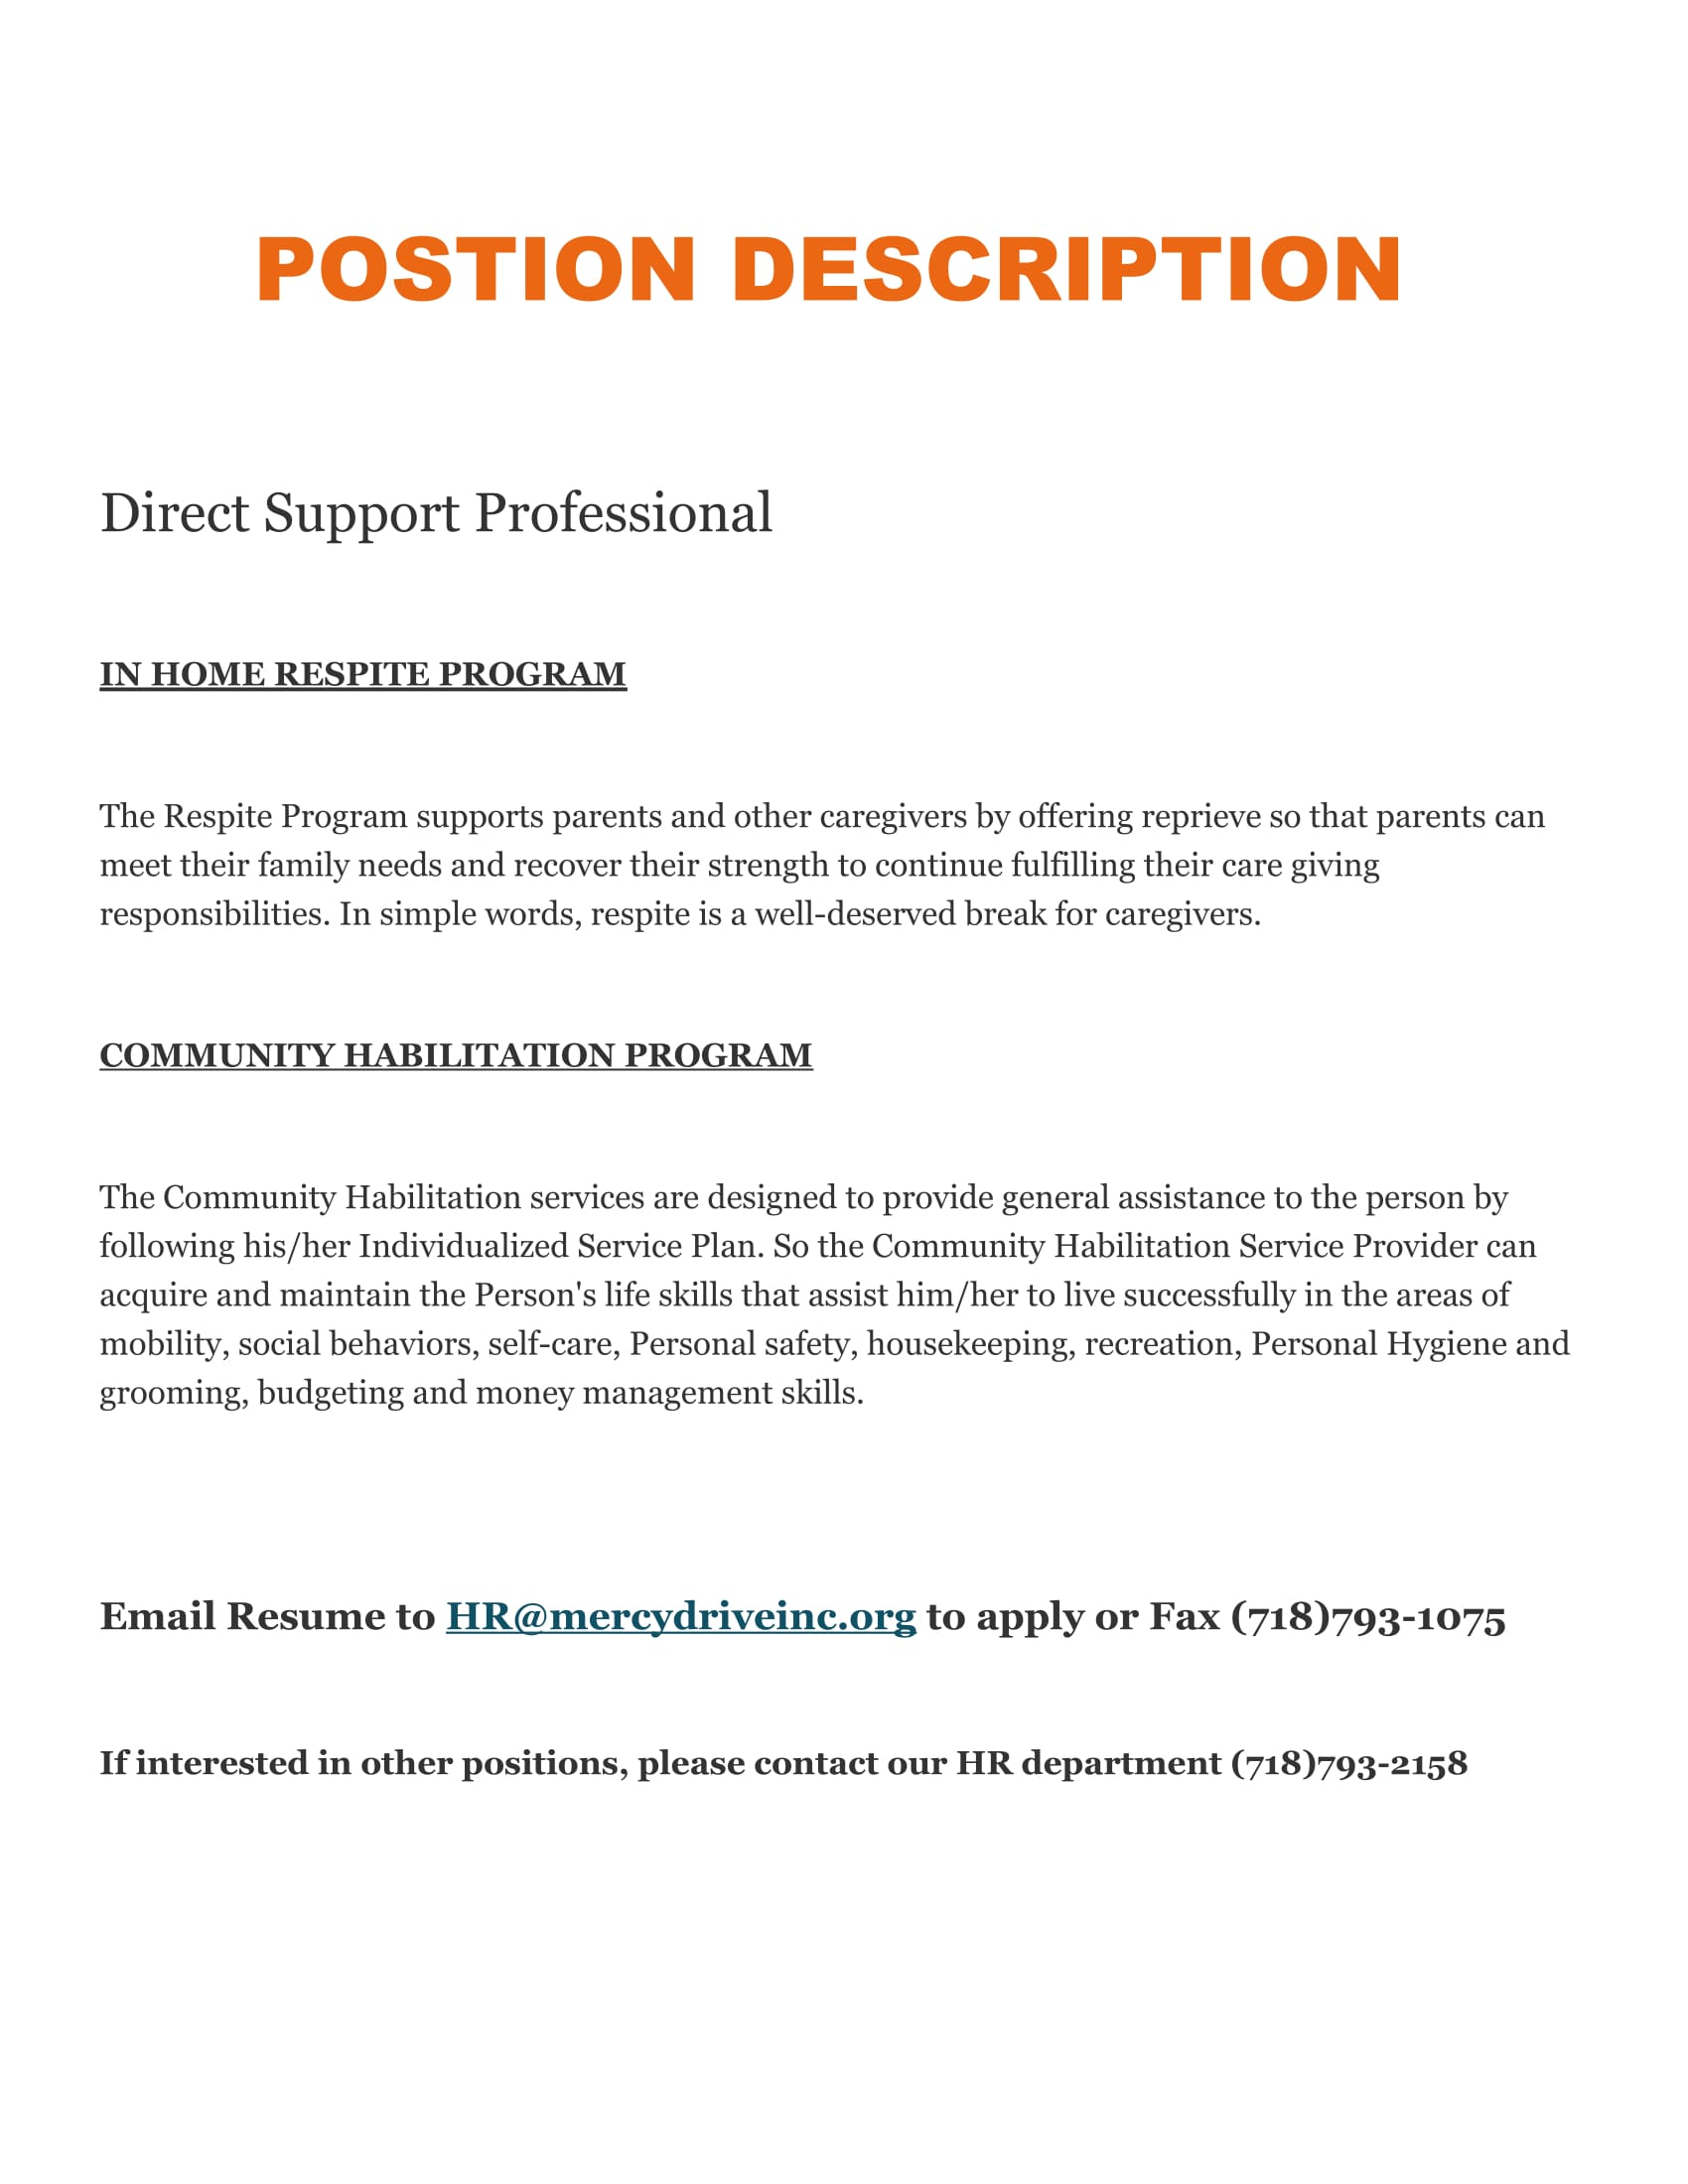 direct support professional jobs connected resume job fair flyer phone number on Resume Direct Support Professional Resume